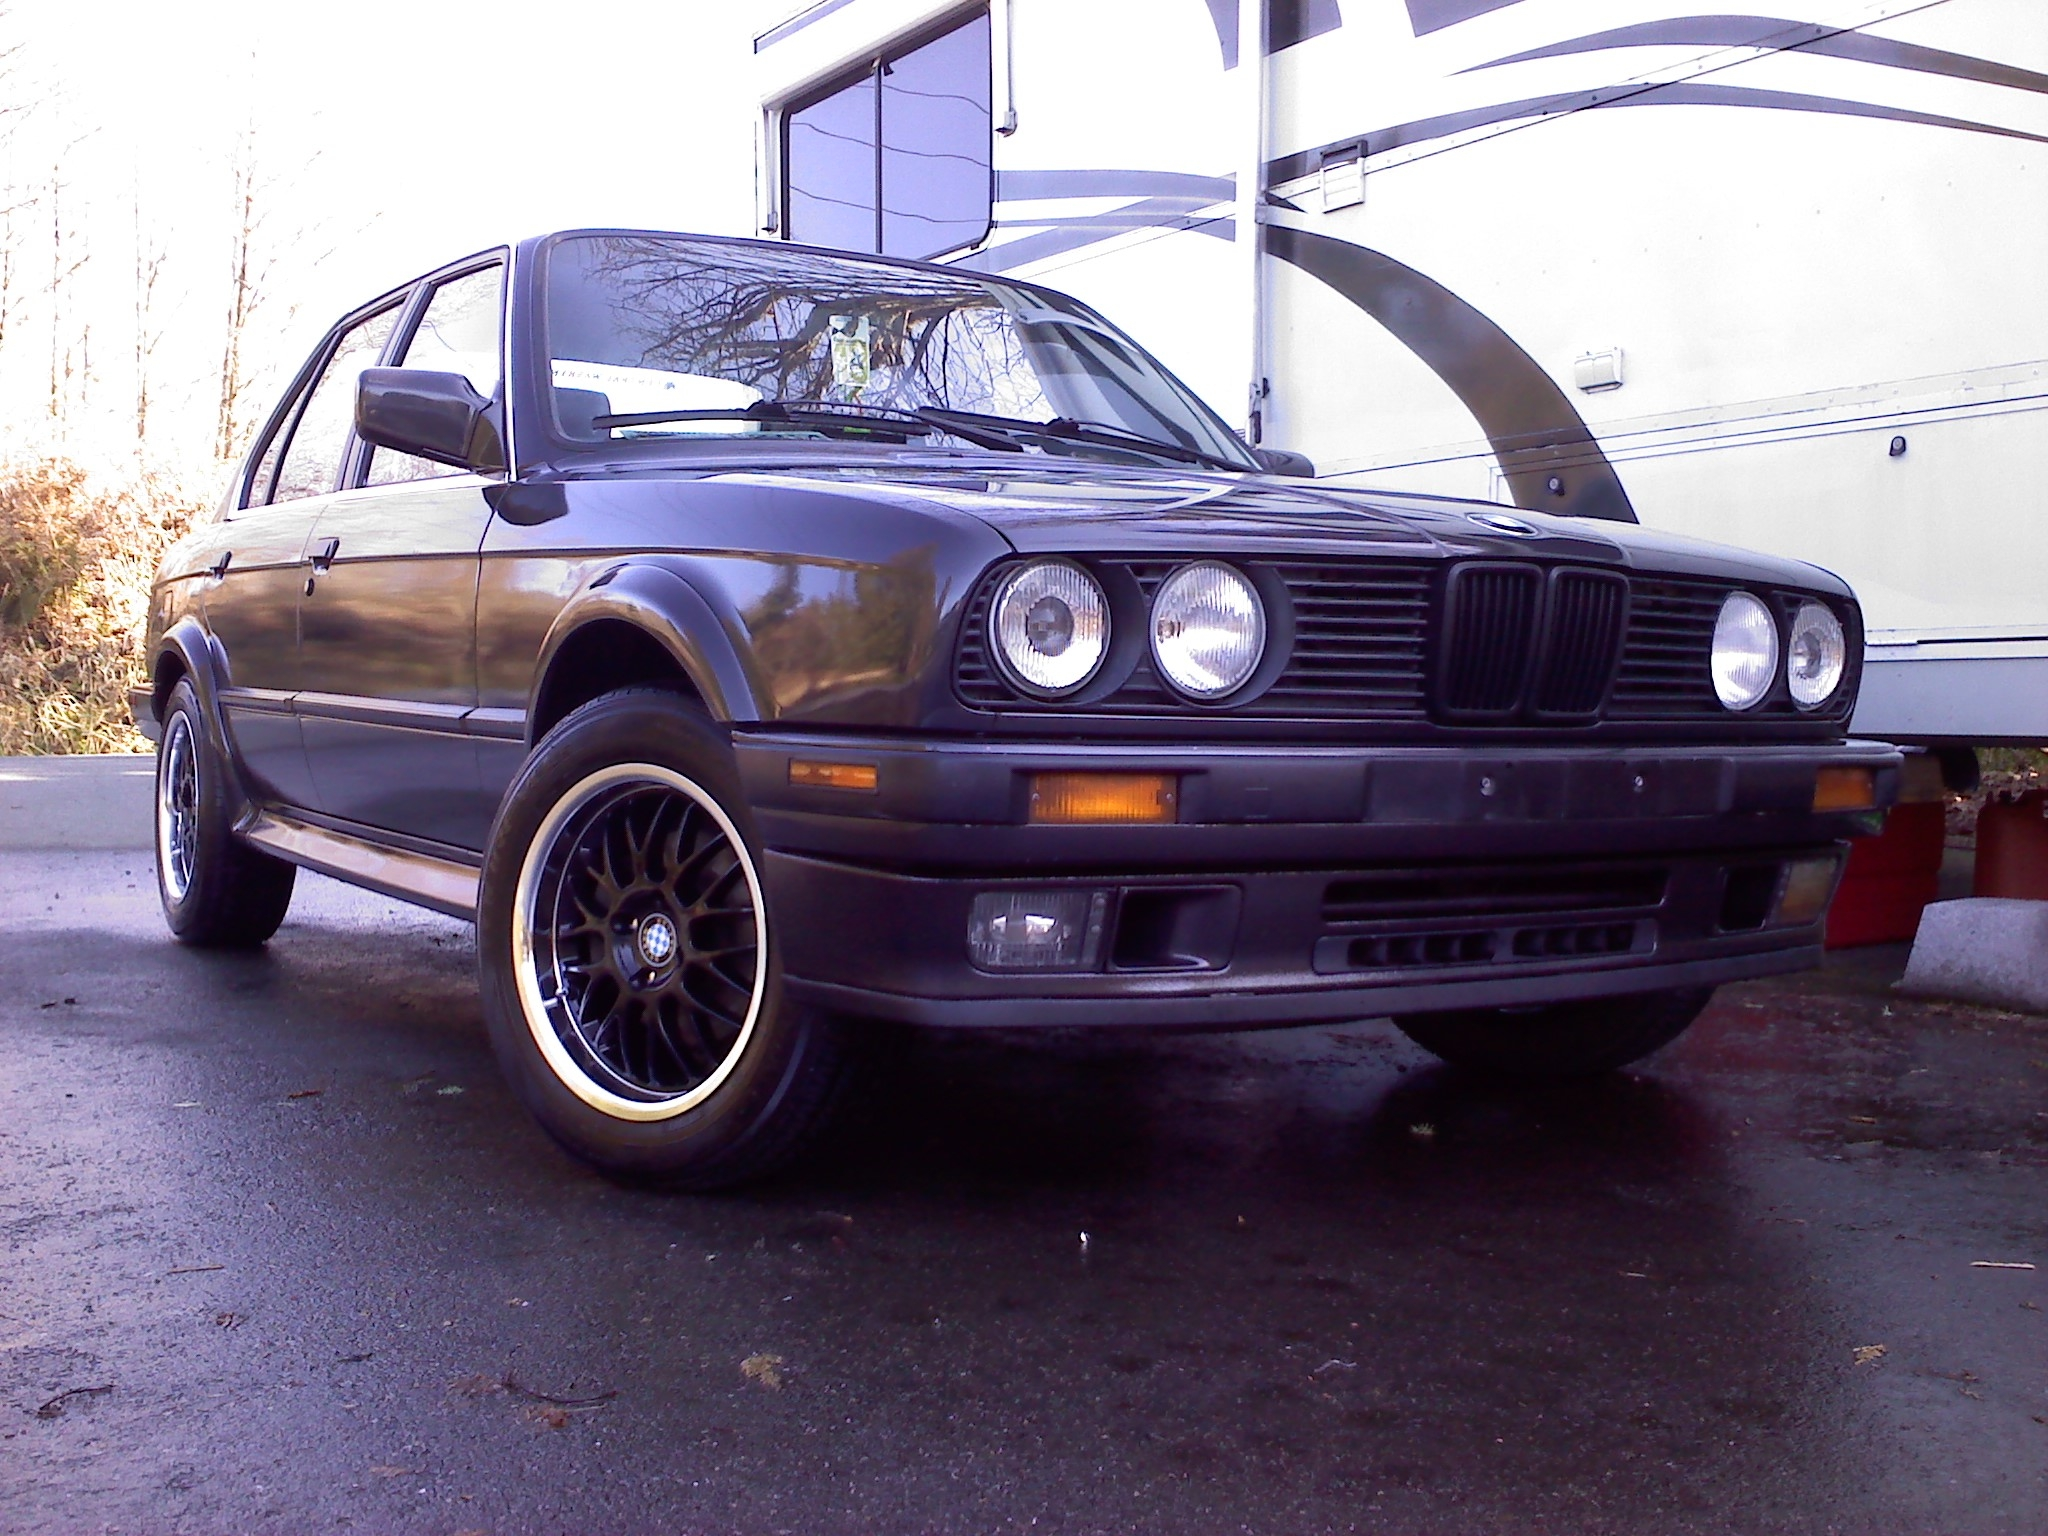 BMW 3 series 320is 1989 photo - 7